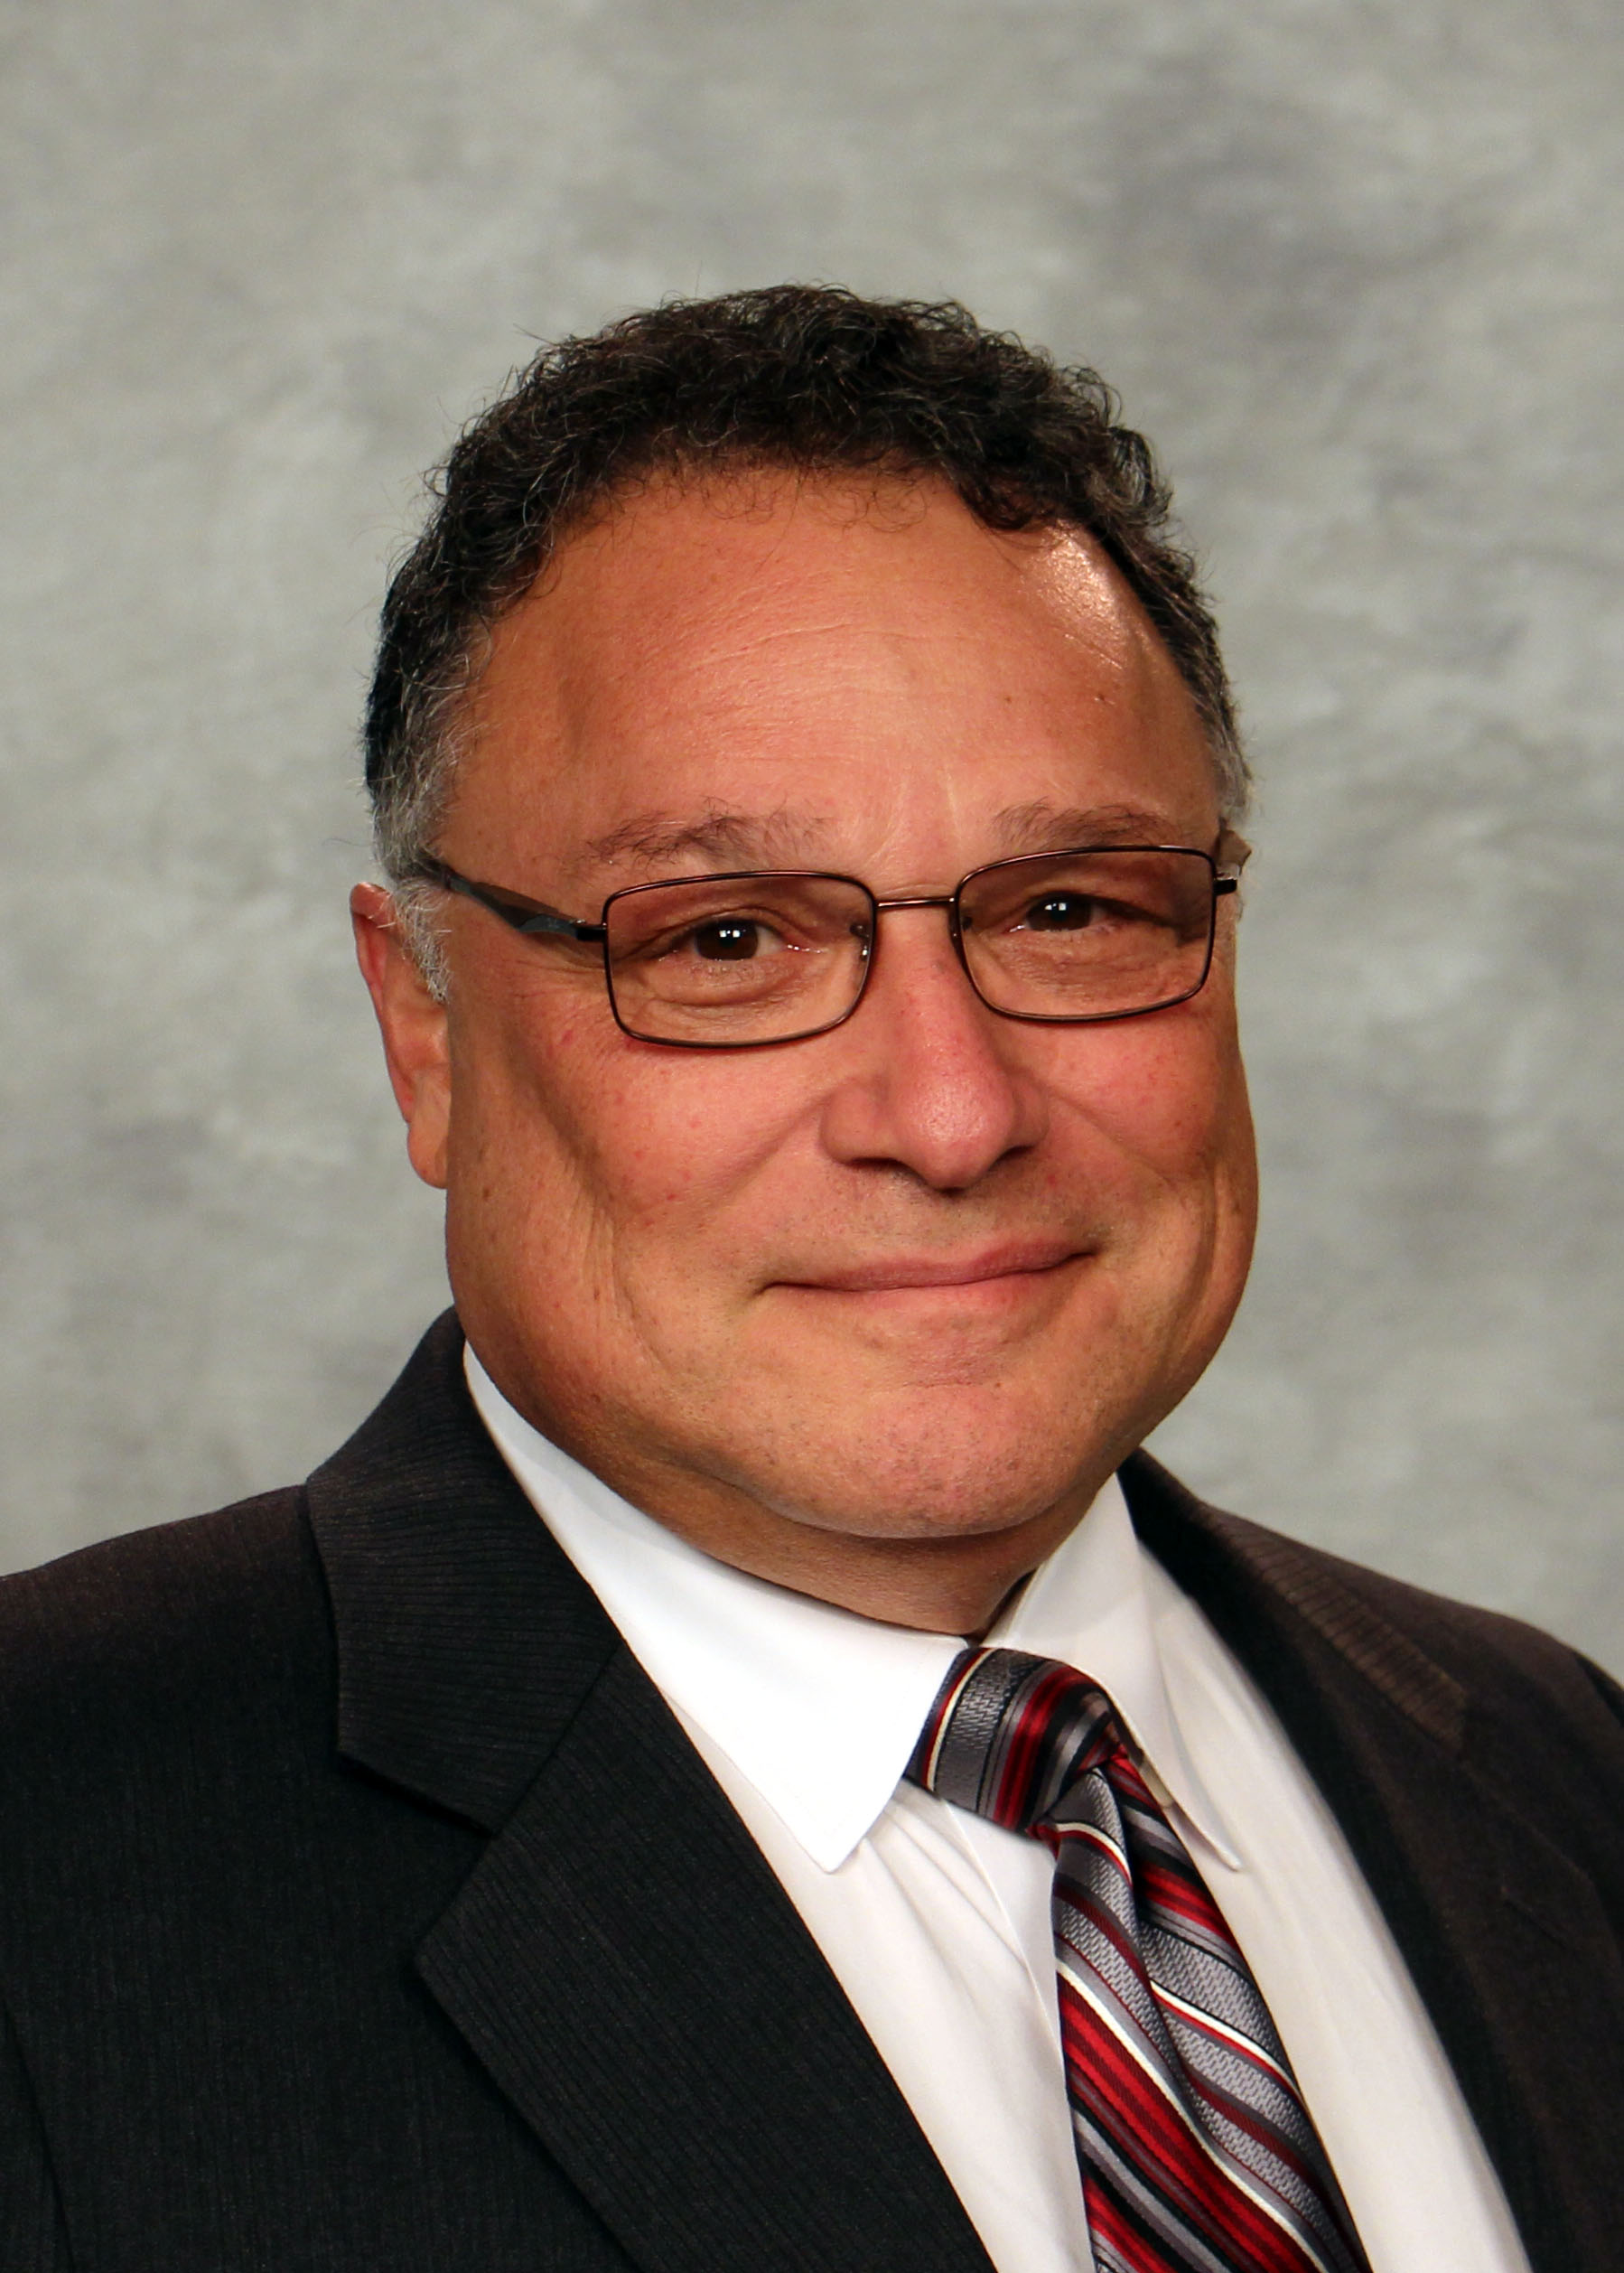 Gary Delorenzo, financial advisor Fairfield CT